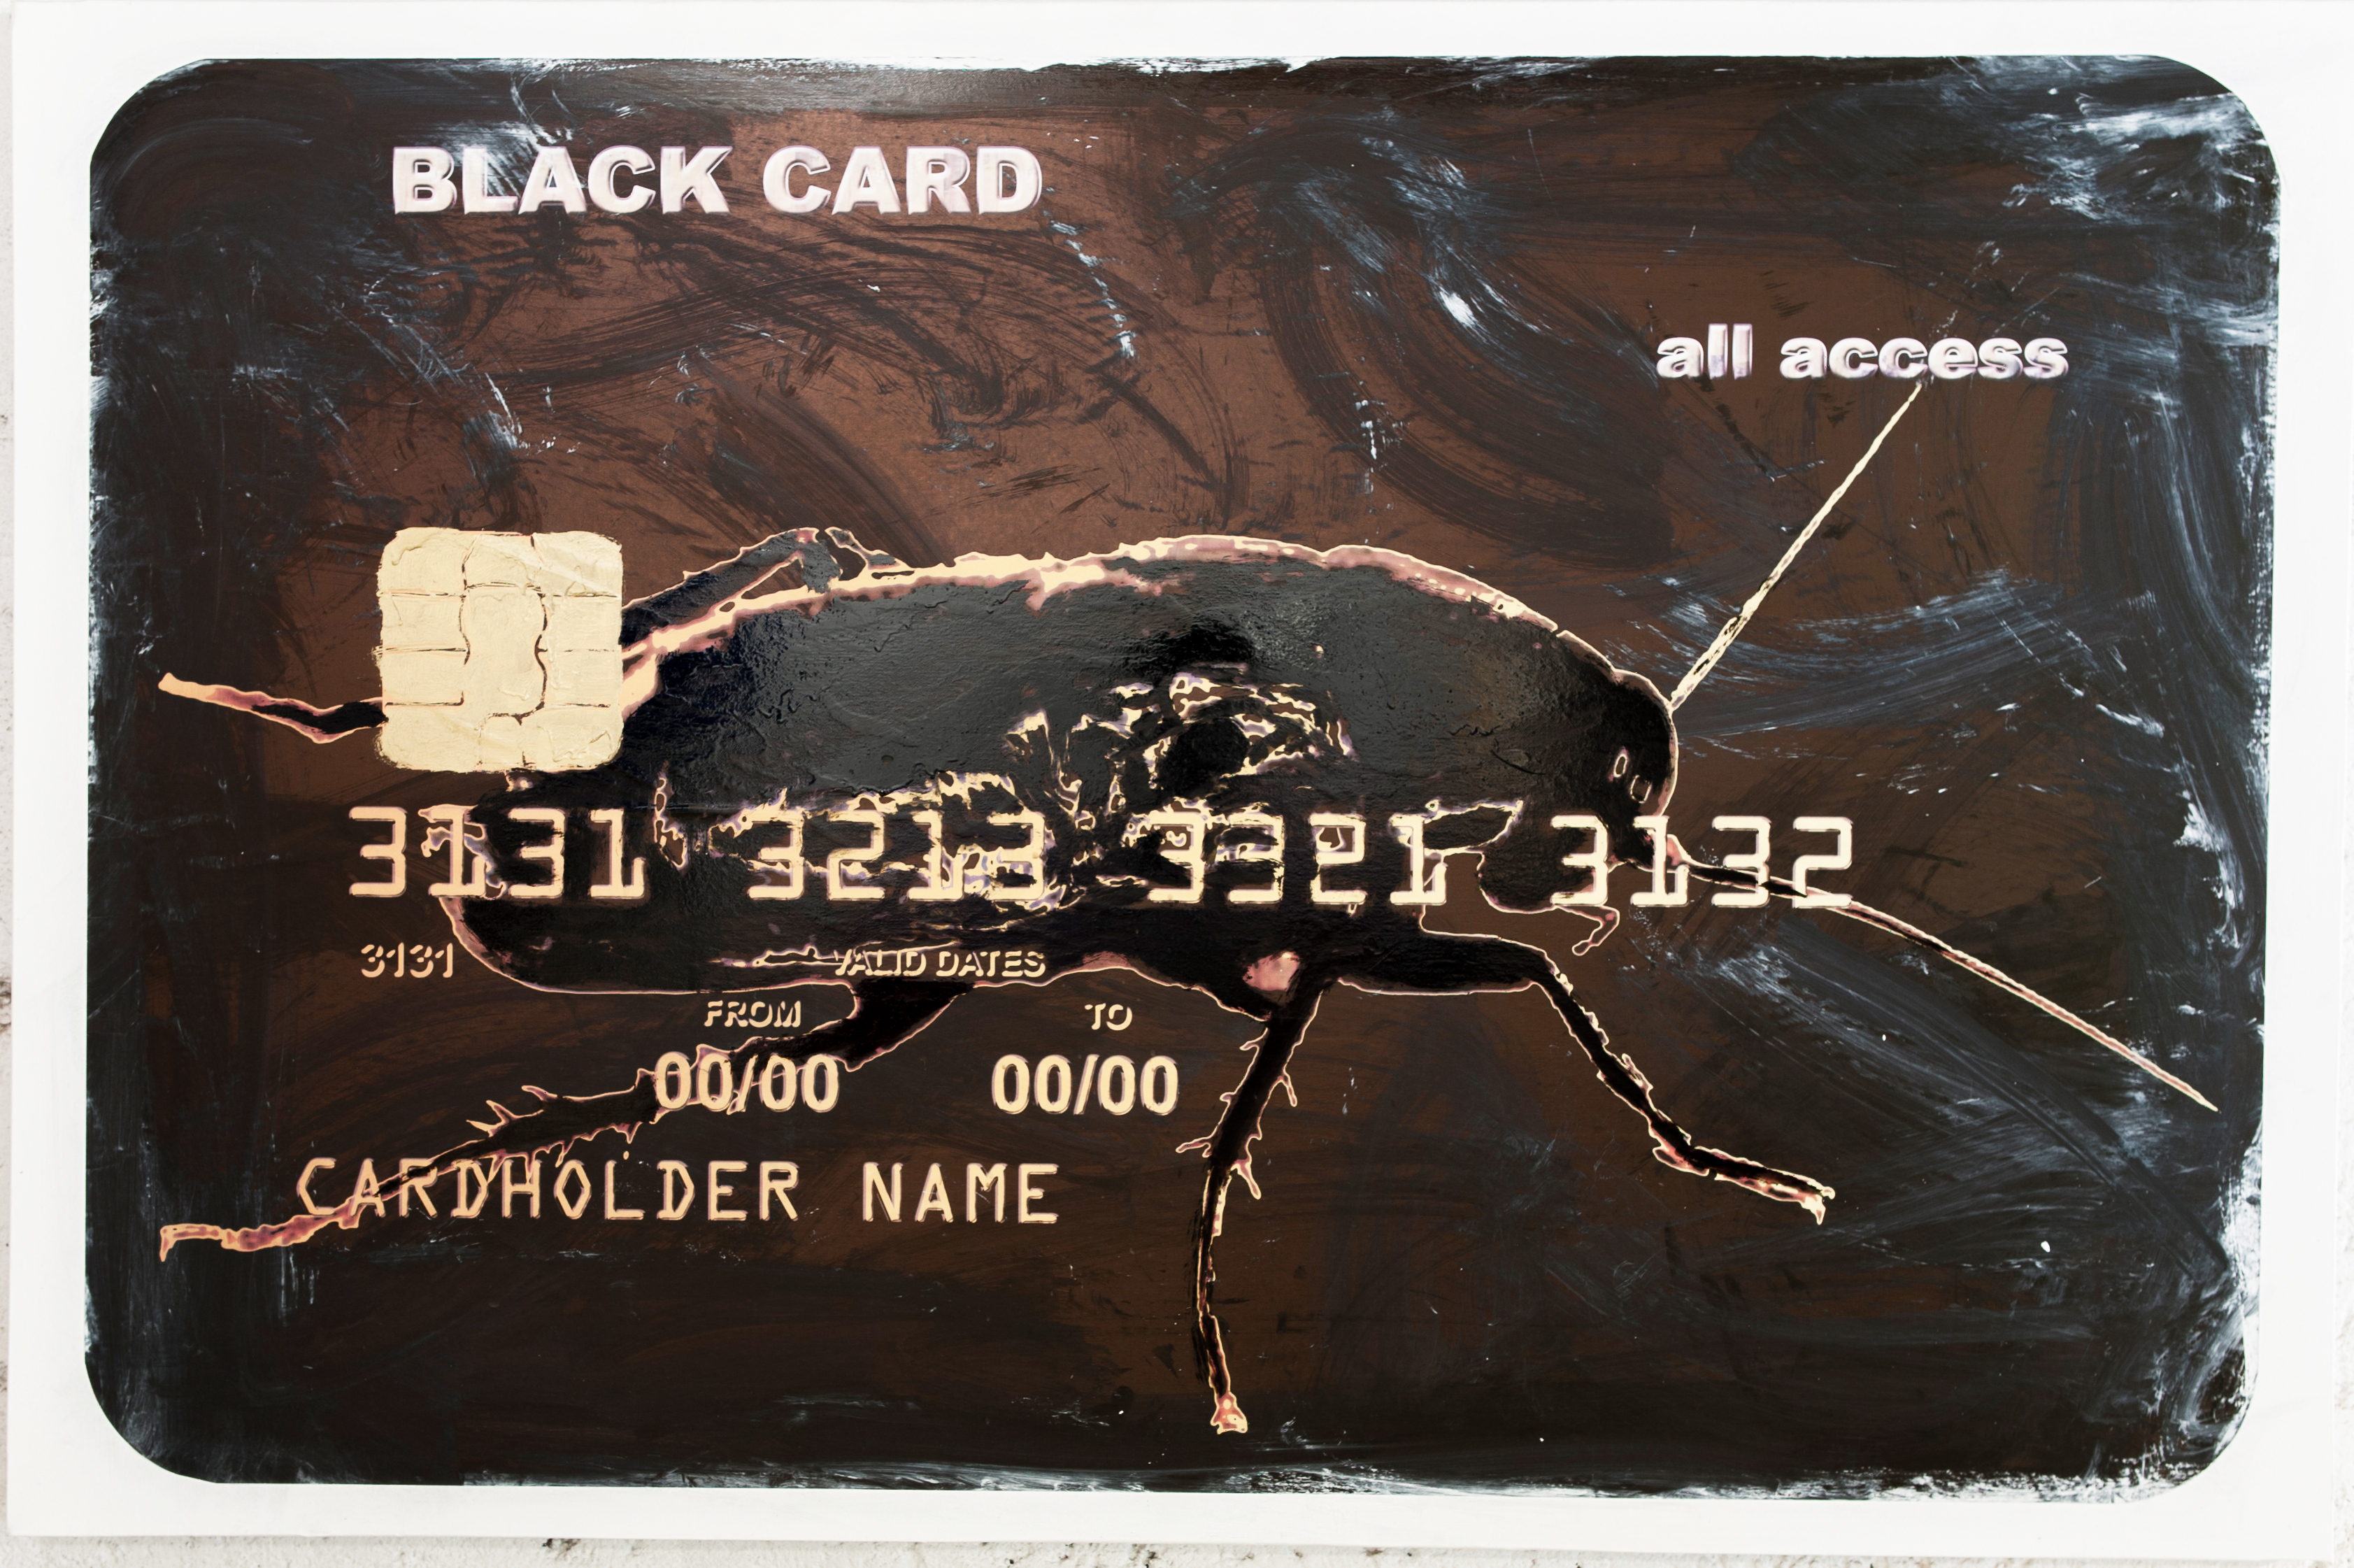 BLACK CARD - ALL ACCESS, 2010-2012, Mixed media on canvas, cm 70x150